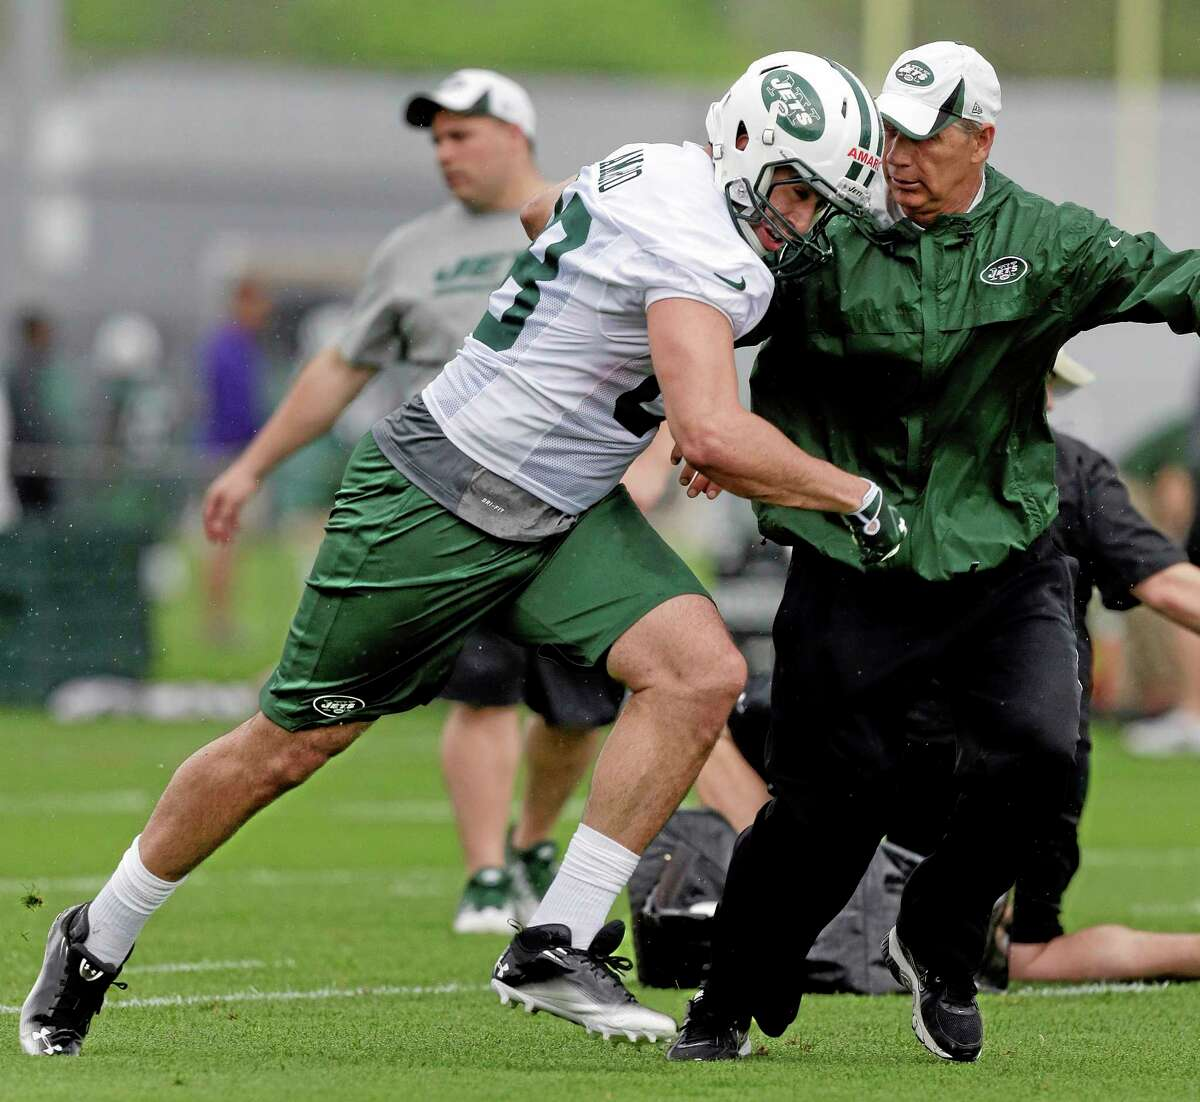 New York Jets tight end Jace Amaro, left, pushes past coach Steve Hagen during the team's rookie camp on Friday in Florham Park, New Jersey.